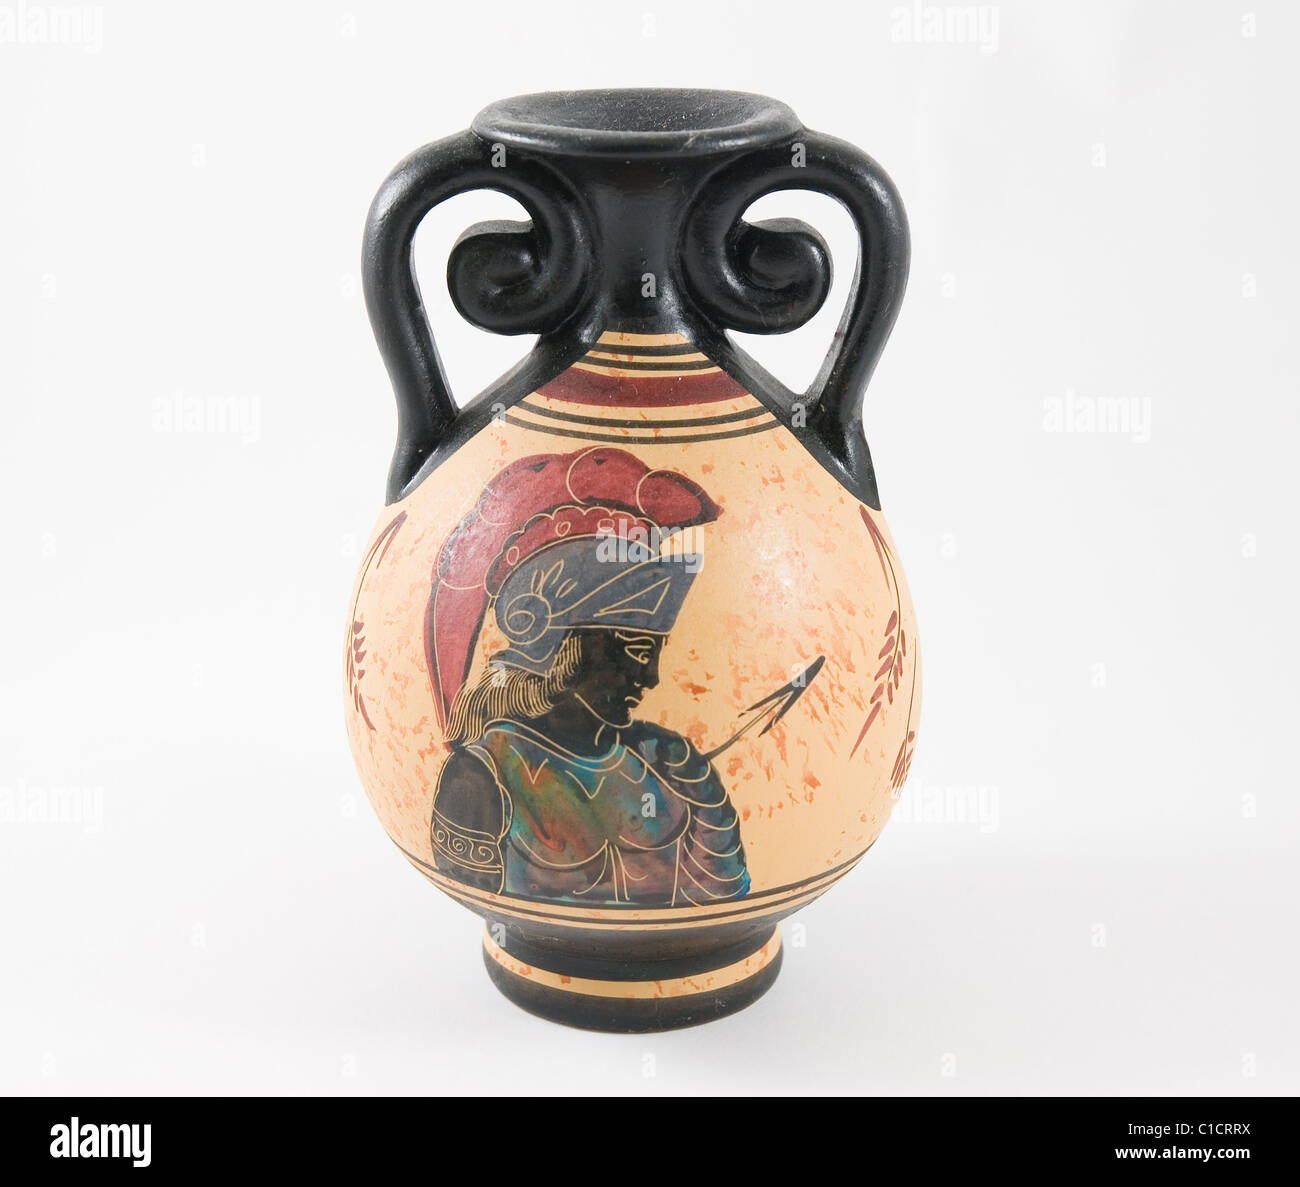 Ancient Greek jar - Stock Image